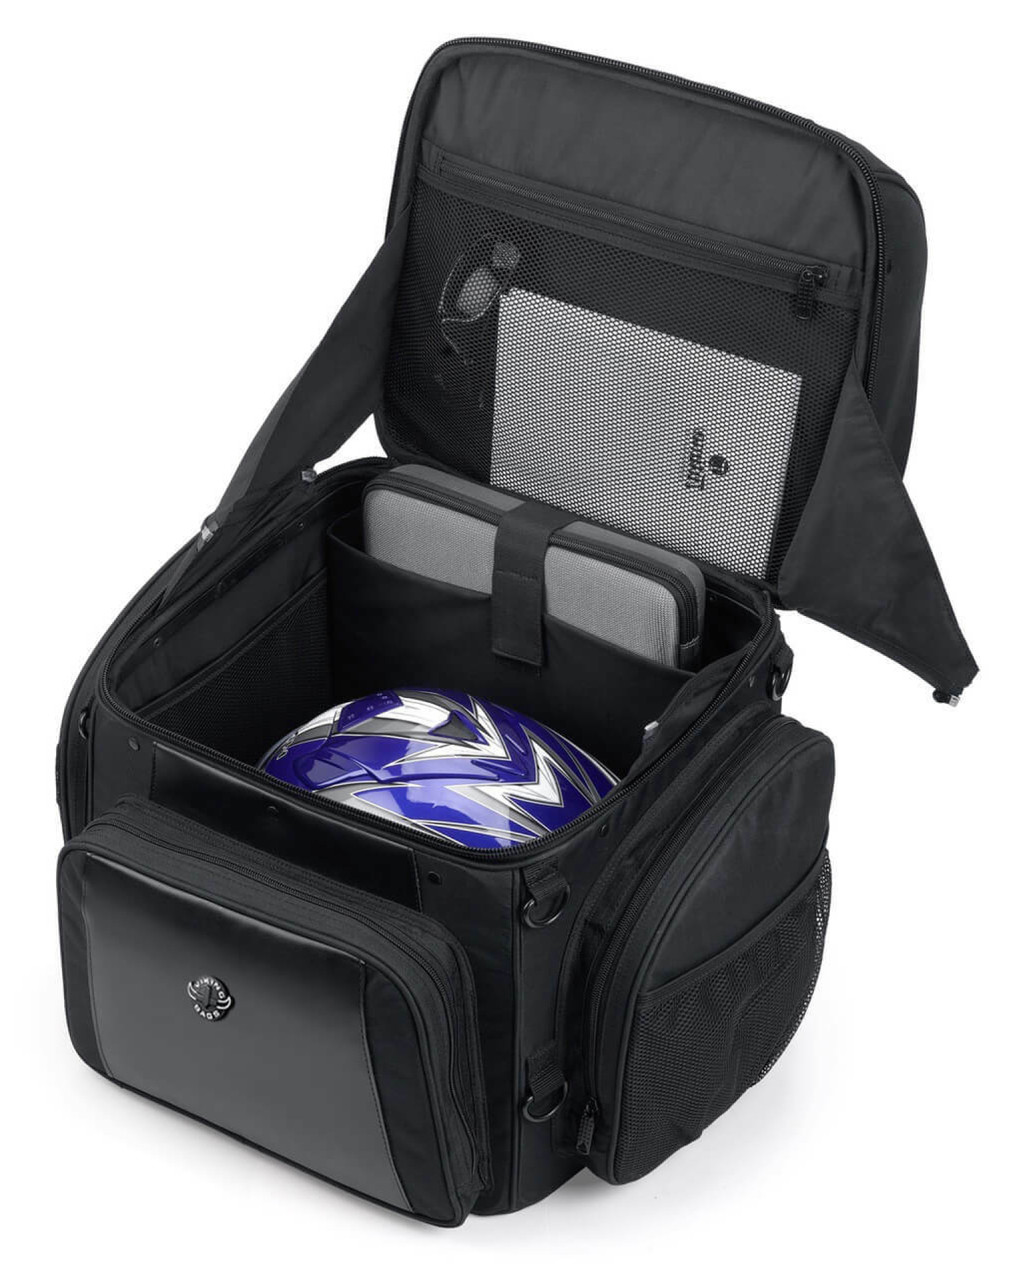 Large Back Rest Motorcycle Tail Bag (3150 cubic inches) Storage View